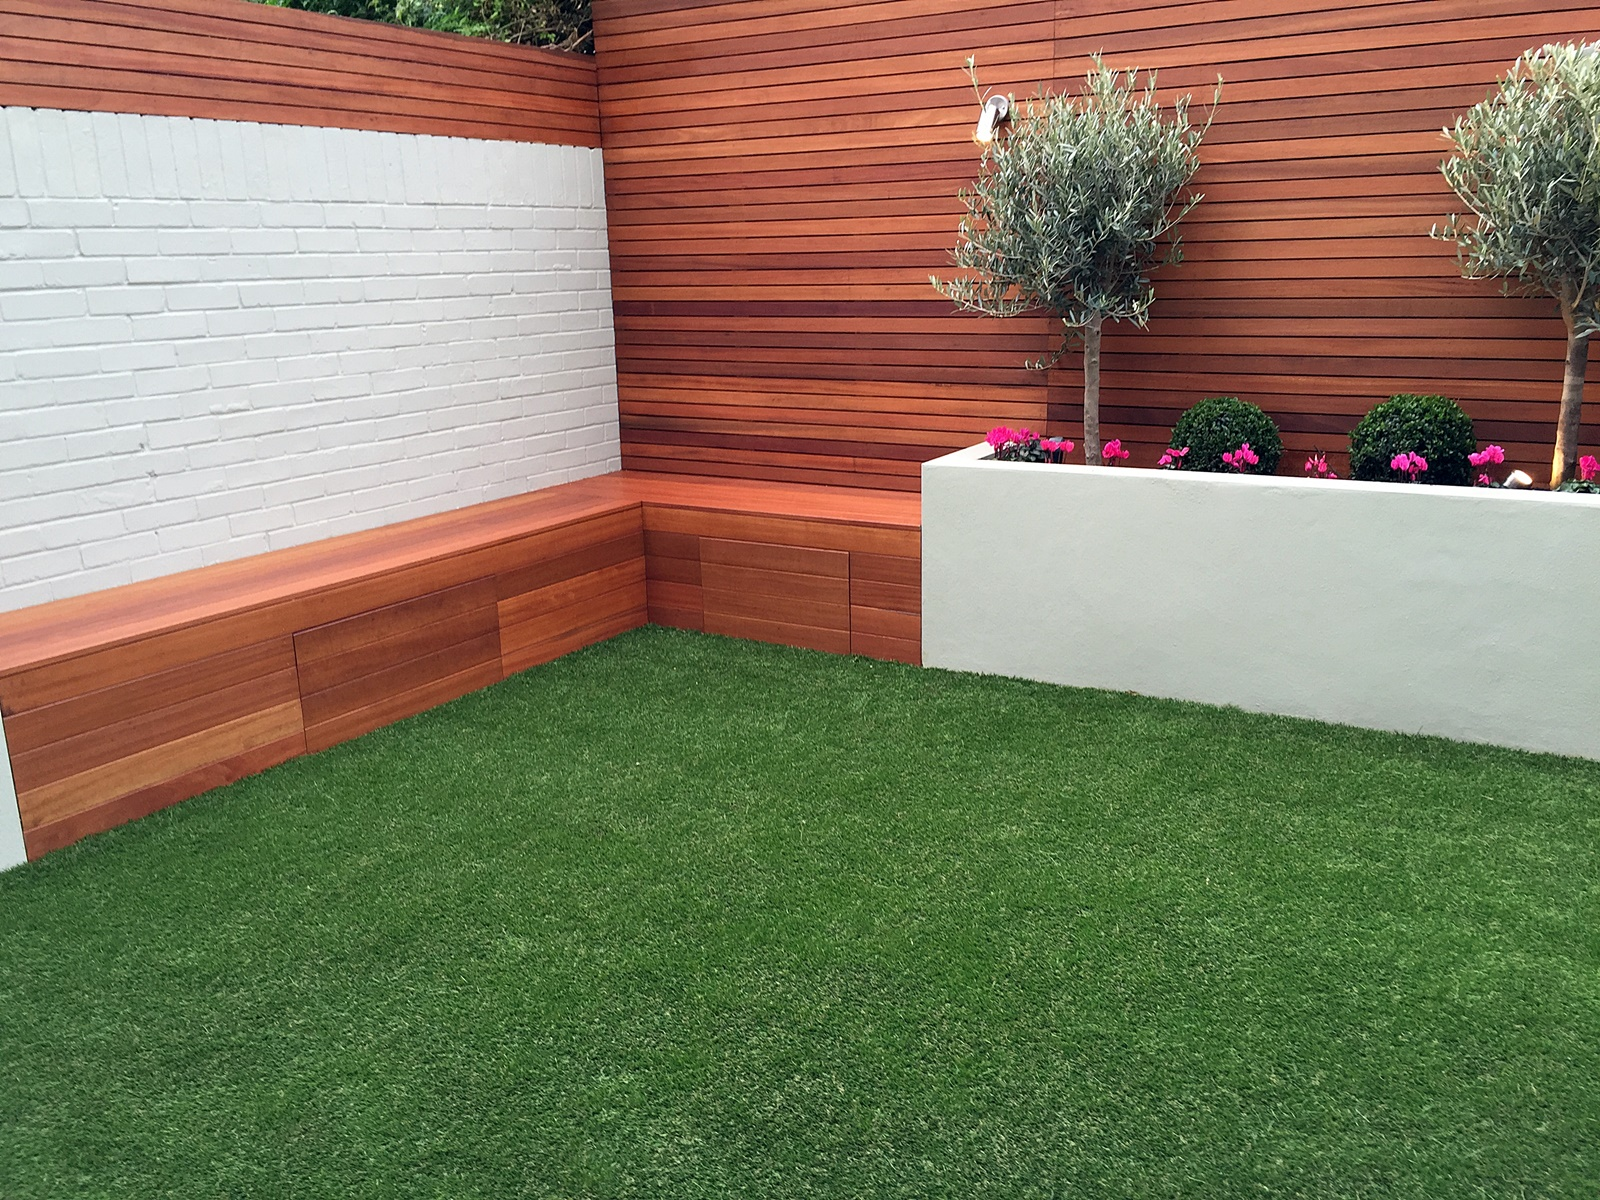 Simple modern court yard garden designer battersea fulham for Small backyard garden design